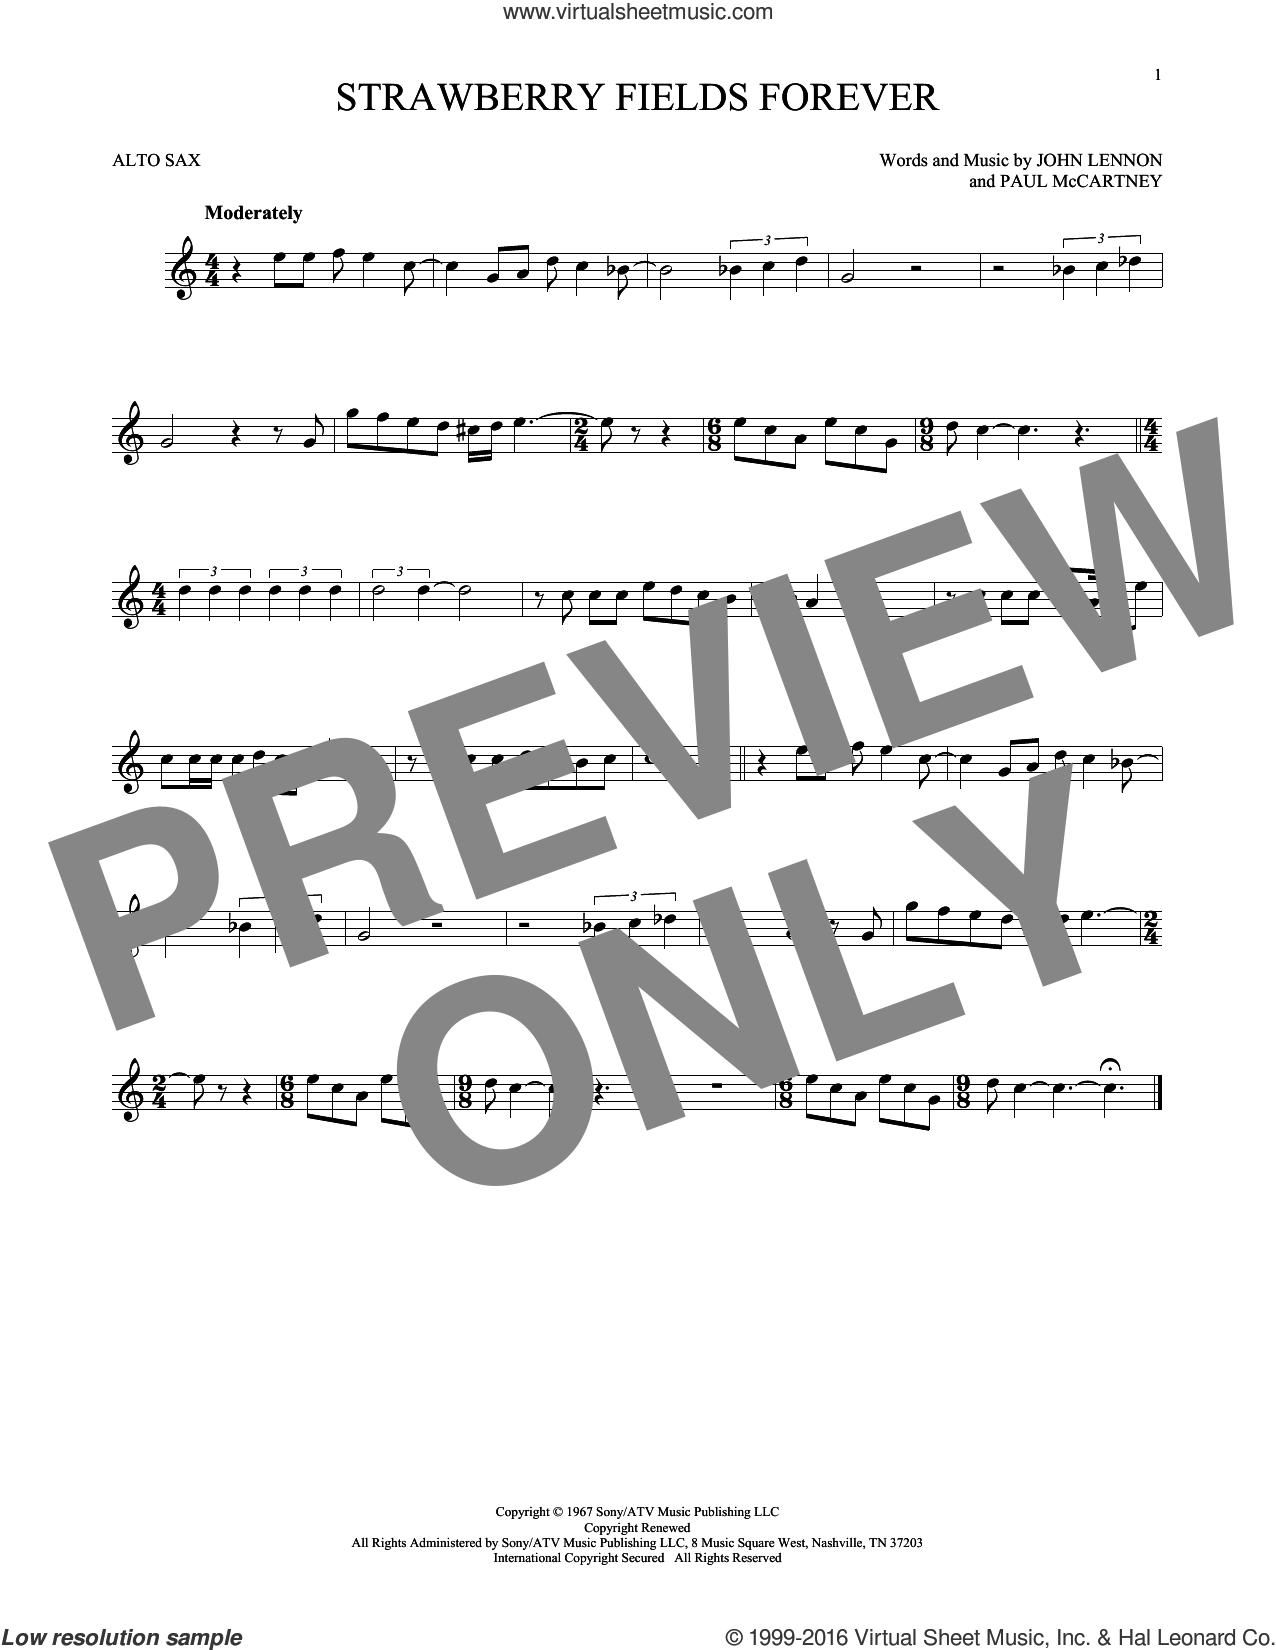 Strawberry Fields Forever sheet music for alto saxophone solo by The Beatles, John Lennon and Paul McCartney, intermediate skill level